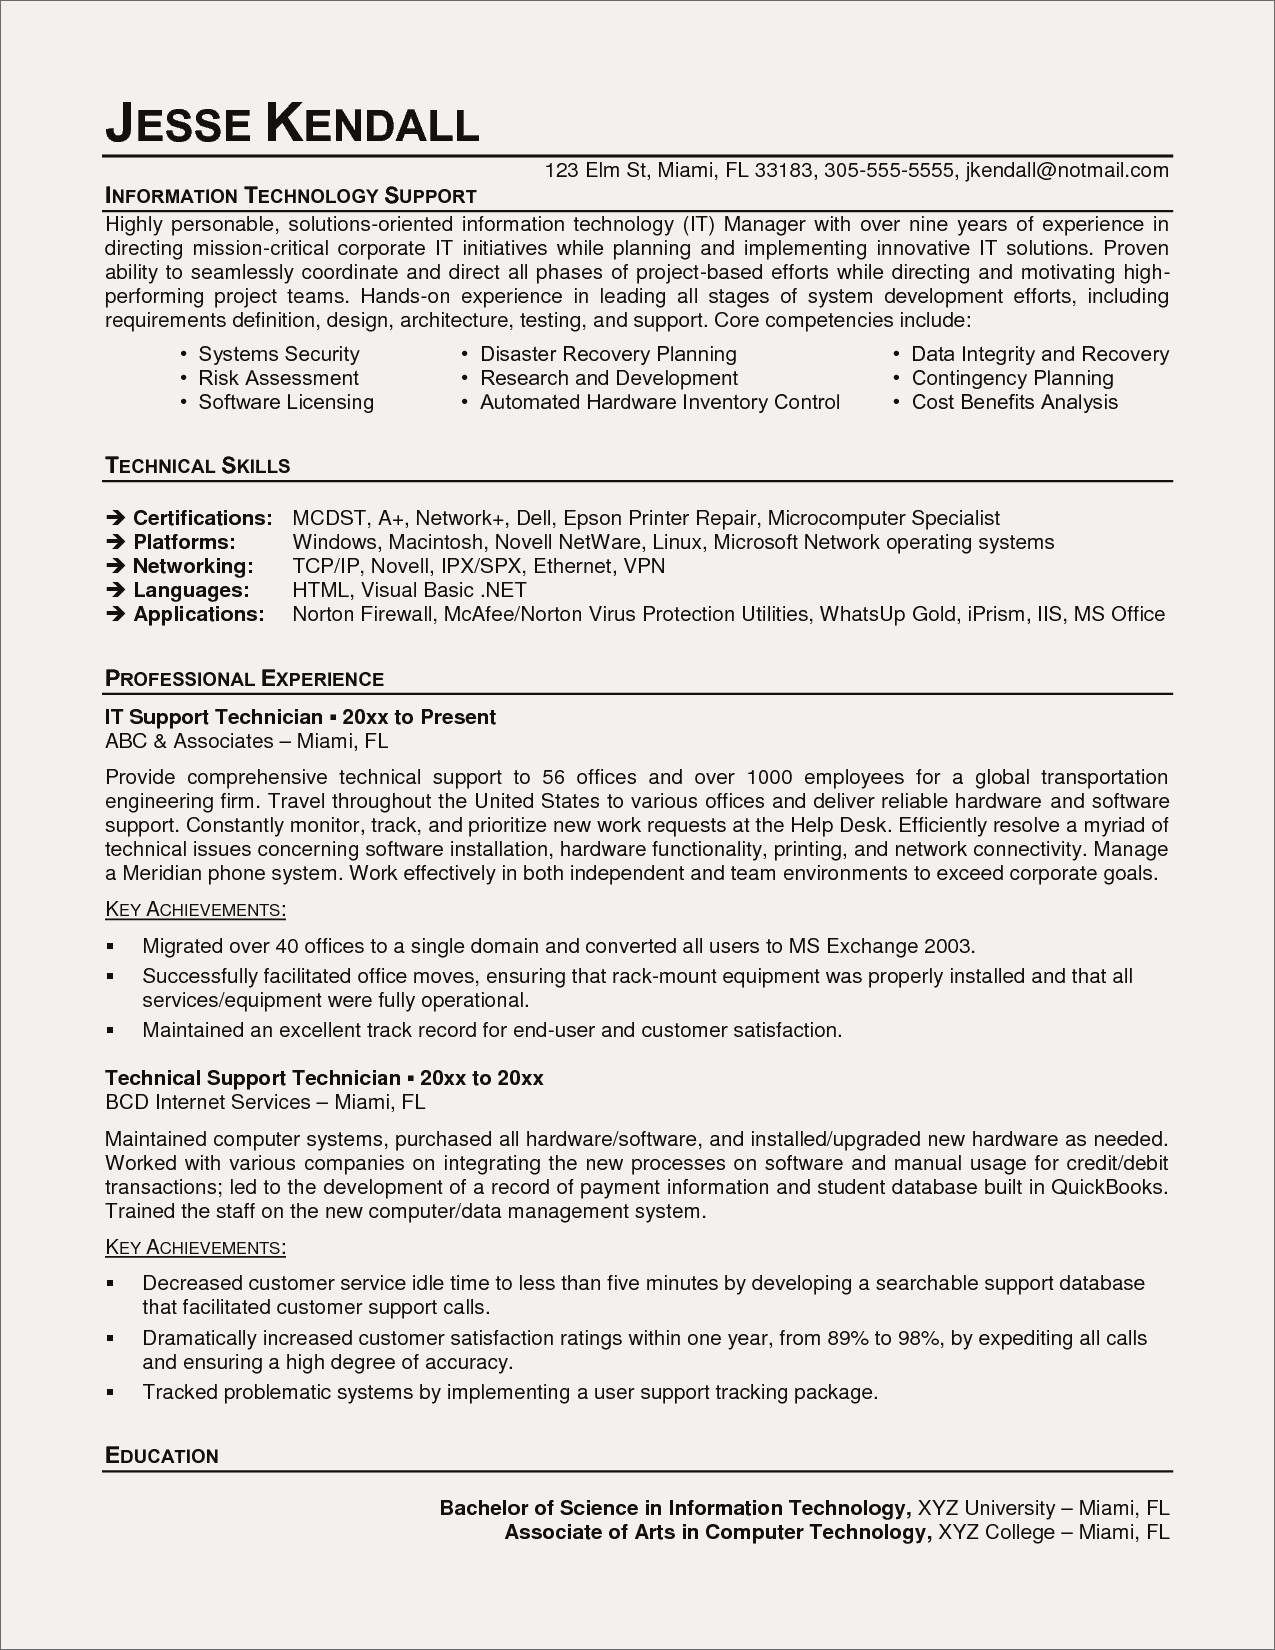 auto mechanic resume template Collection-Technician Resume Examples New Auto Mechanic Resume American Resume Sample New Student Resume 0d 15-c